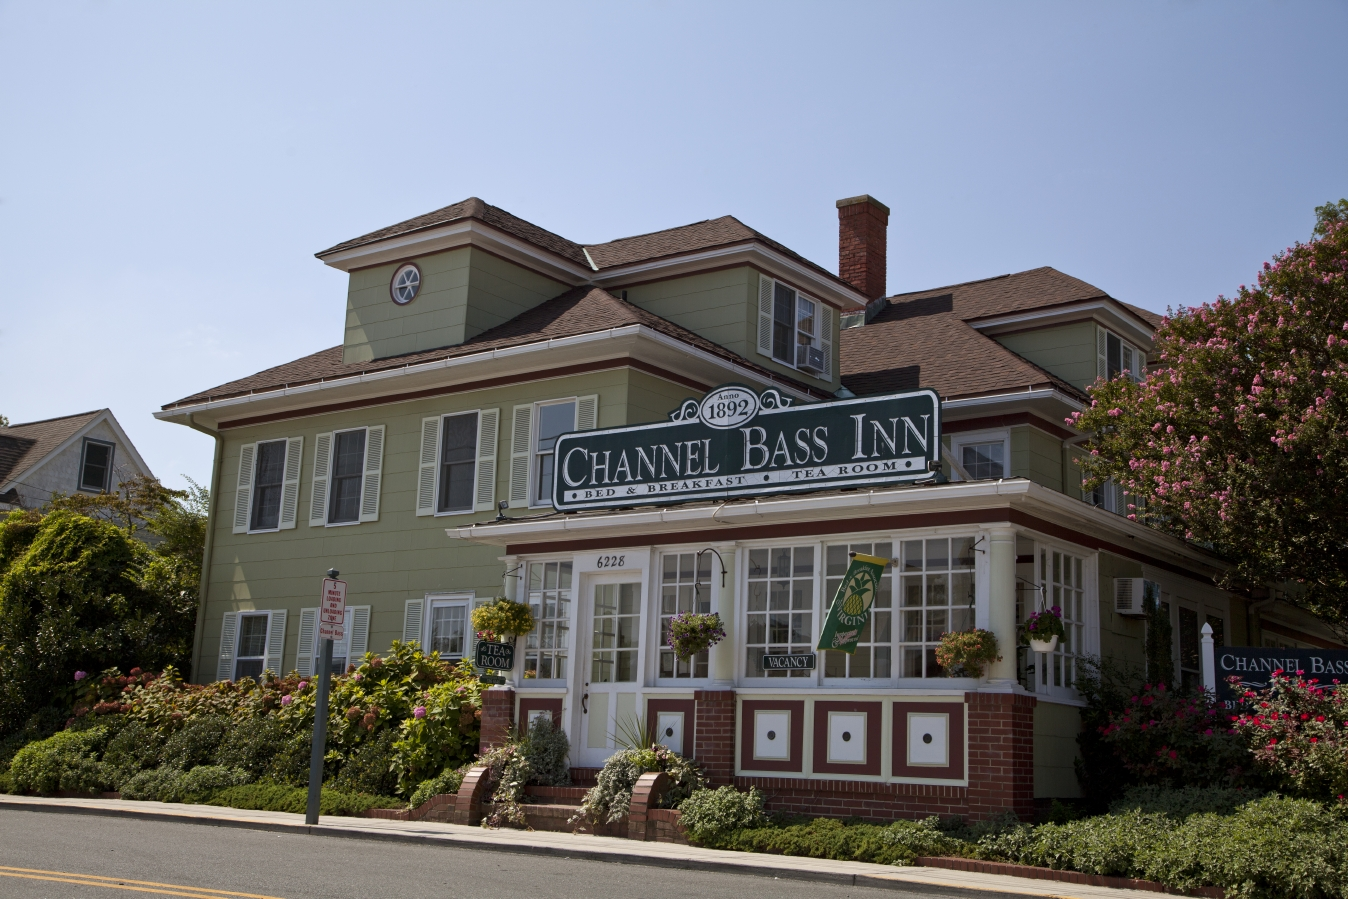 Channel Bass Inn Bed & Breakfast